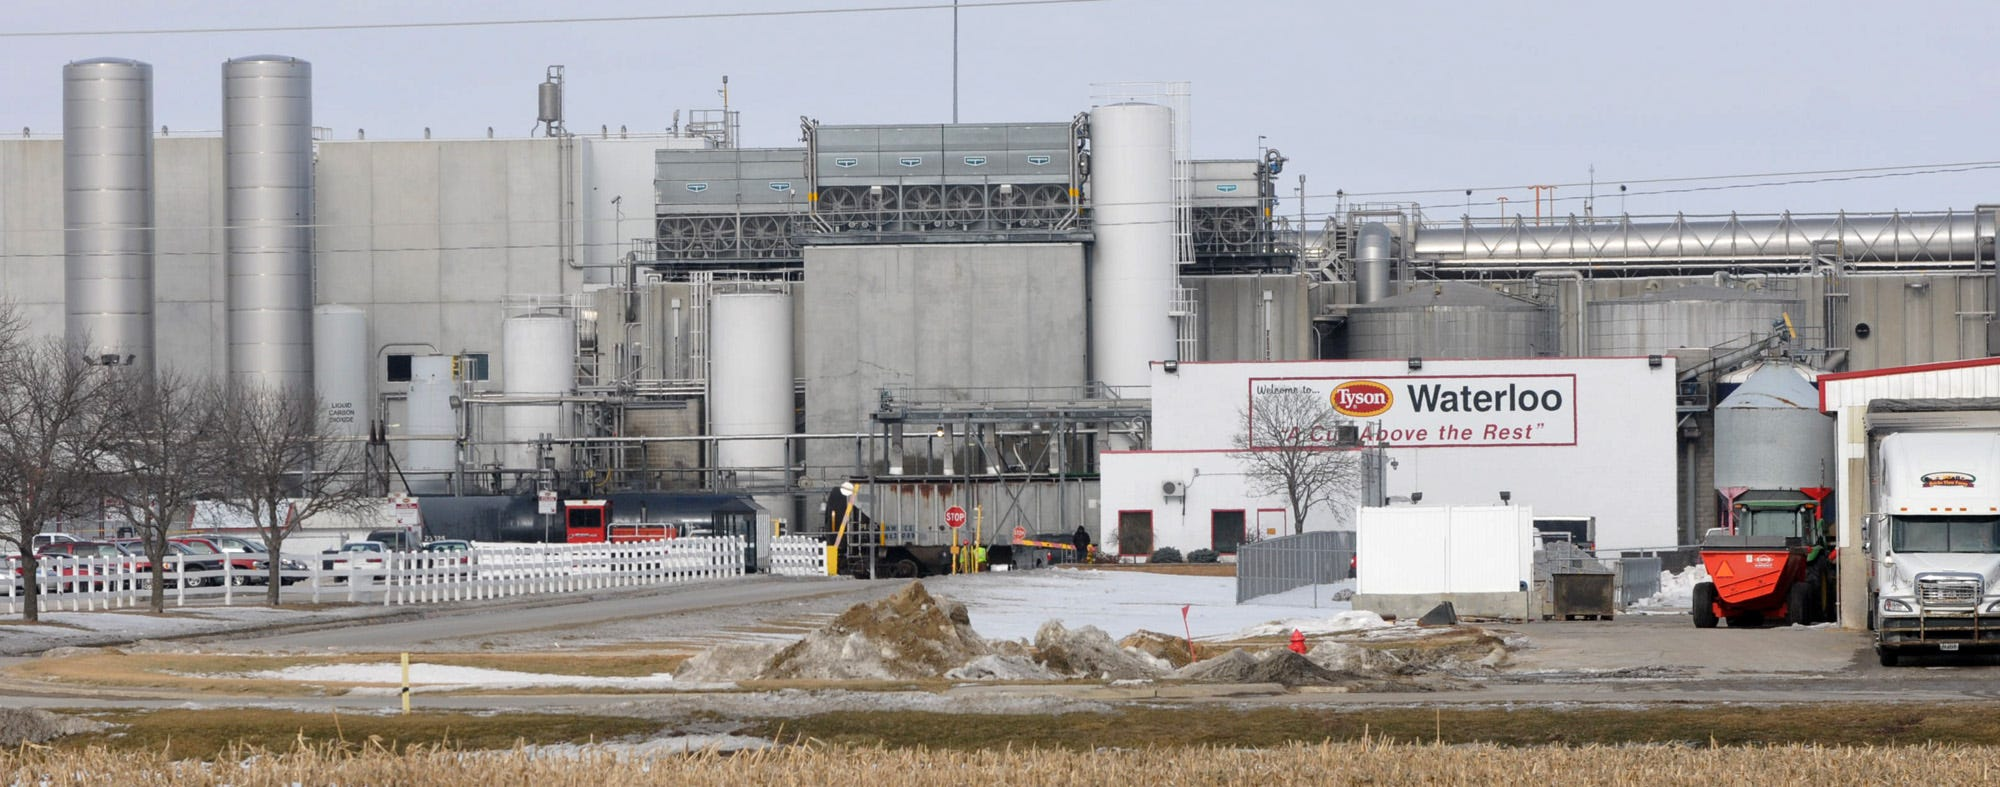 In new allegation, lawsuit says Tyson officials lied to interpreters about COVID-19 dangers in Iowa plant